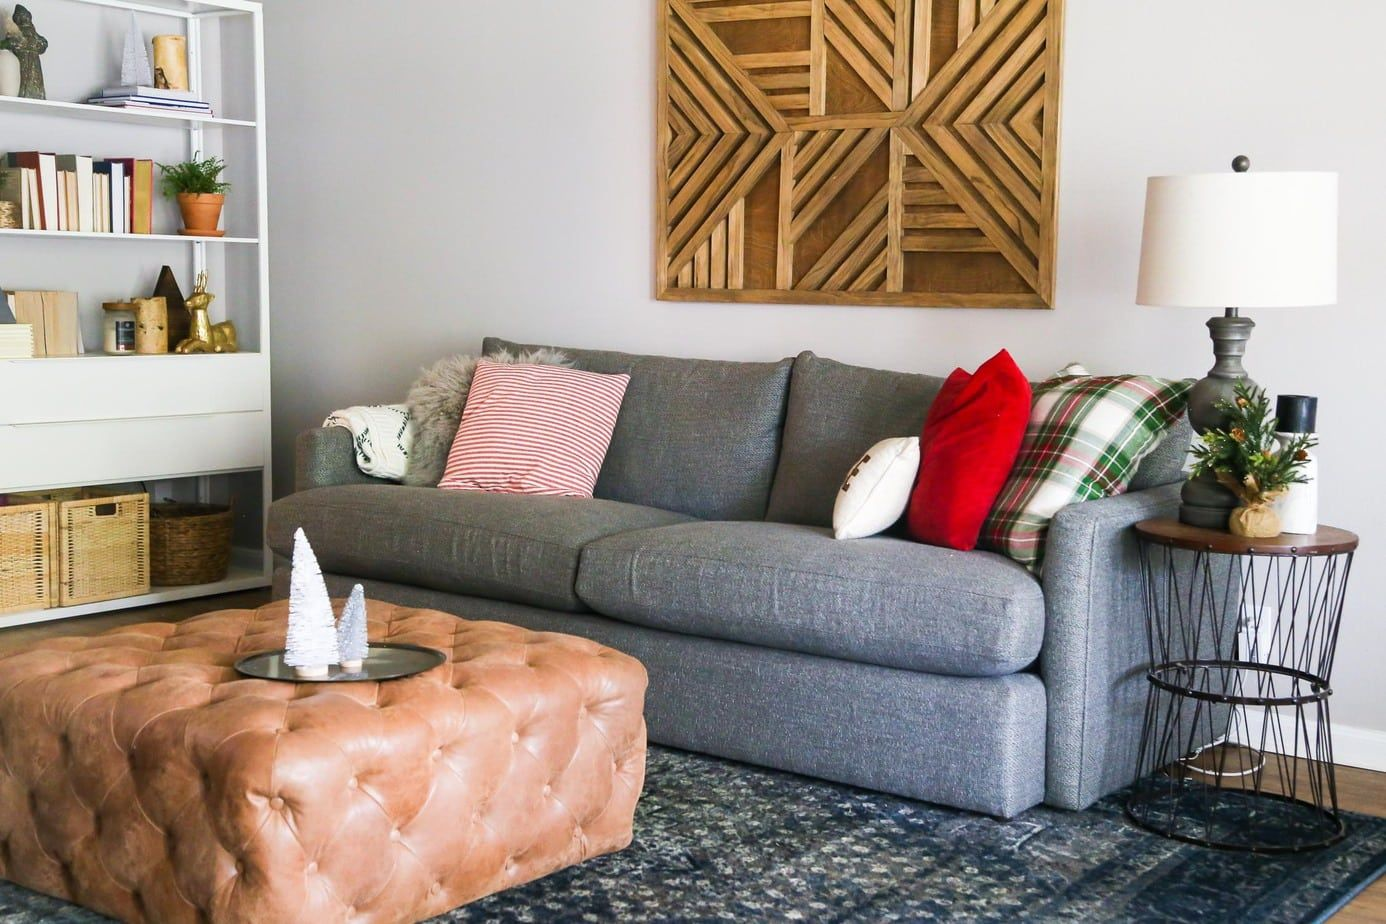 A Review Of The Crate Barrel Lounge Ii Petite Sofa It S A Big Comfy Couch That S Perfect For Families Who Are Lo Lounge Sofa Comfy Couch Chaise Lounge Sofa